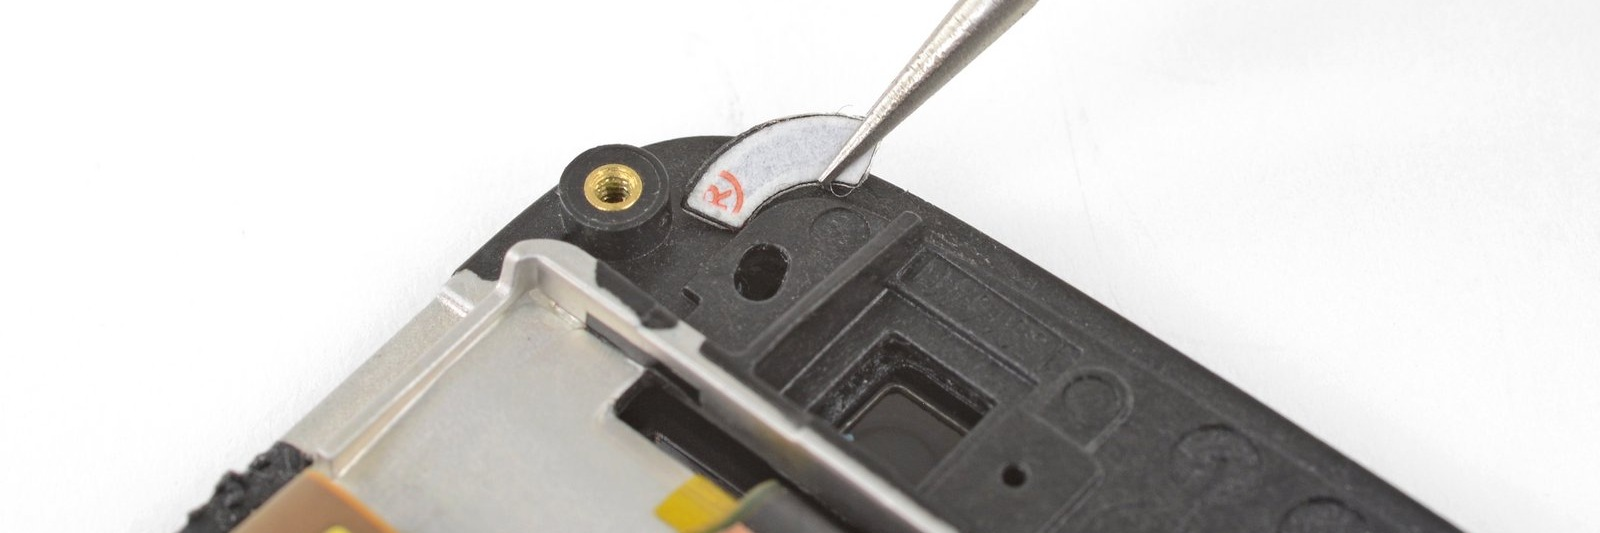 Applying a rounded Tesa Tape corner to a phone with tweezers